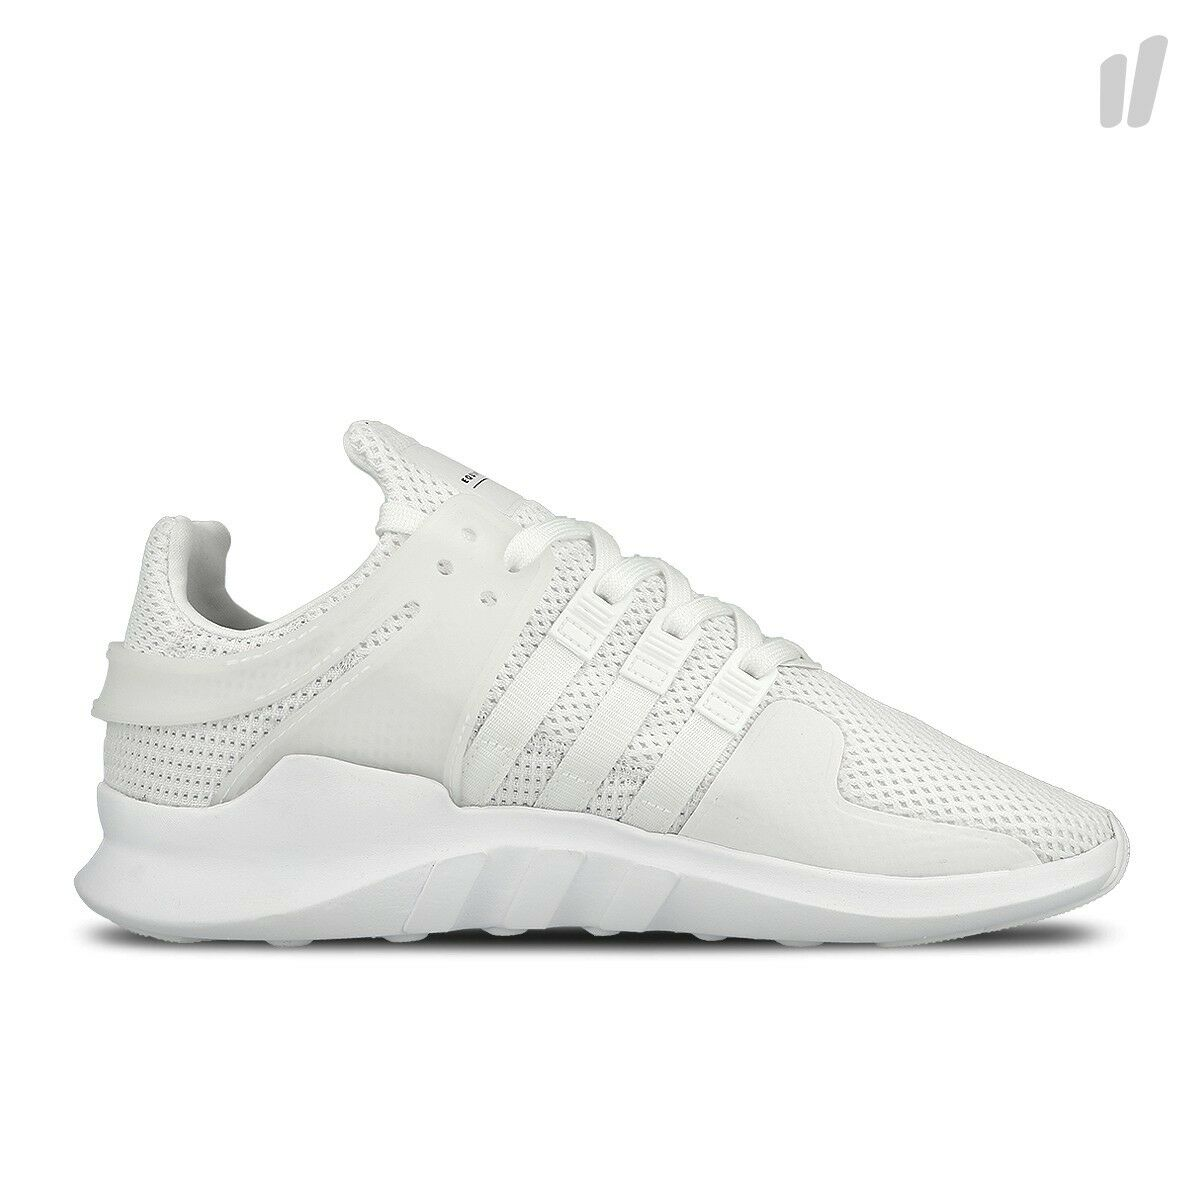 Adidas Men's EQT Support ADV Primeknit PK 91-16 [BA8322] triple white 12